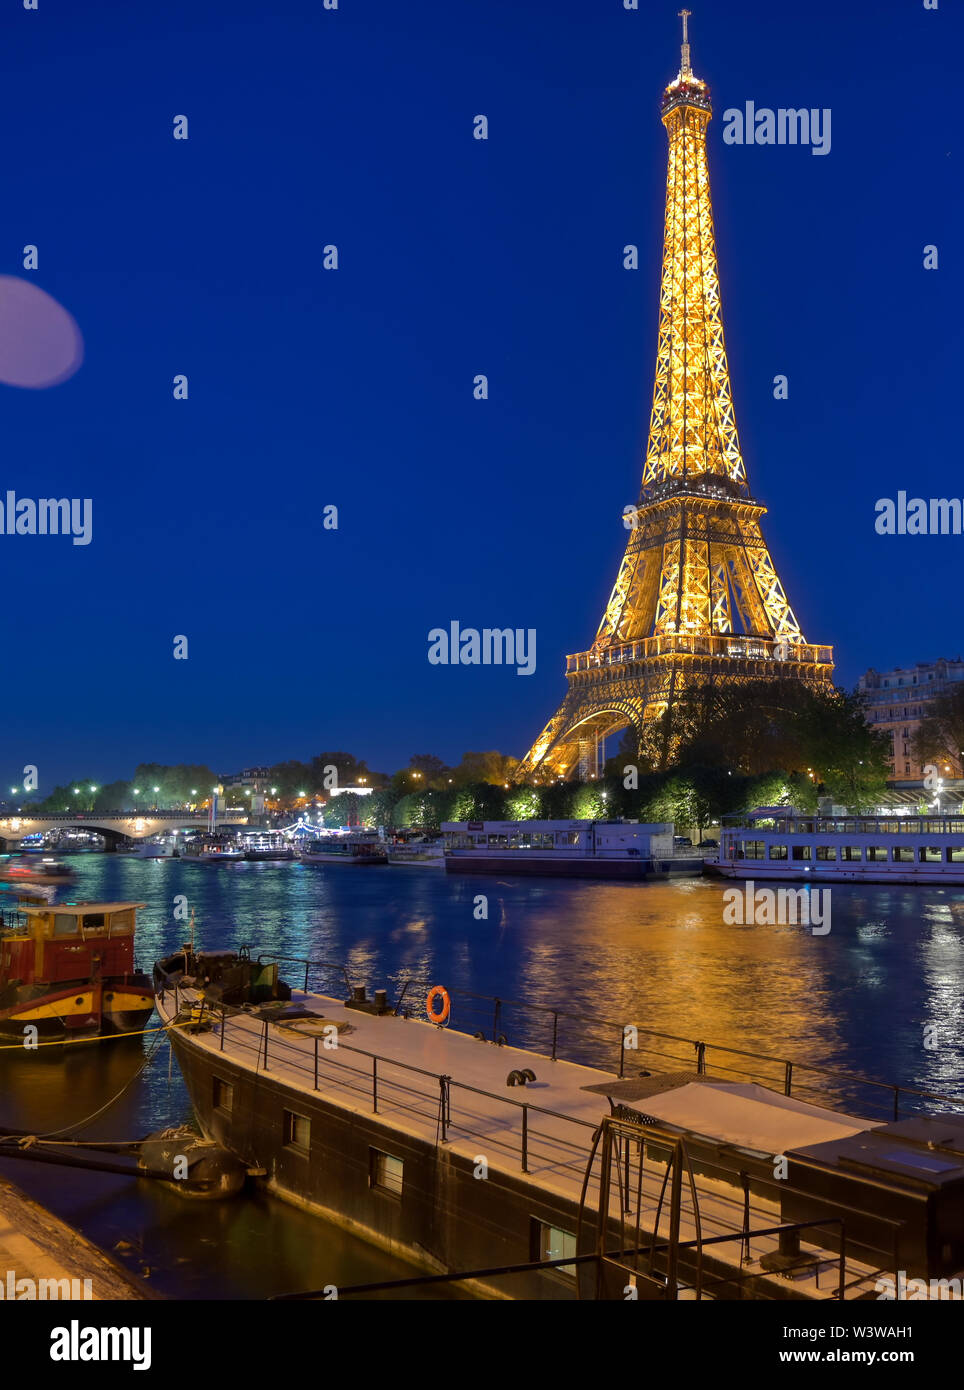 Paris, France - April 20, 2019 - A view of the Eiffel Tower at night across the River Seine in Paris, France. - Stock Image